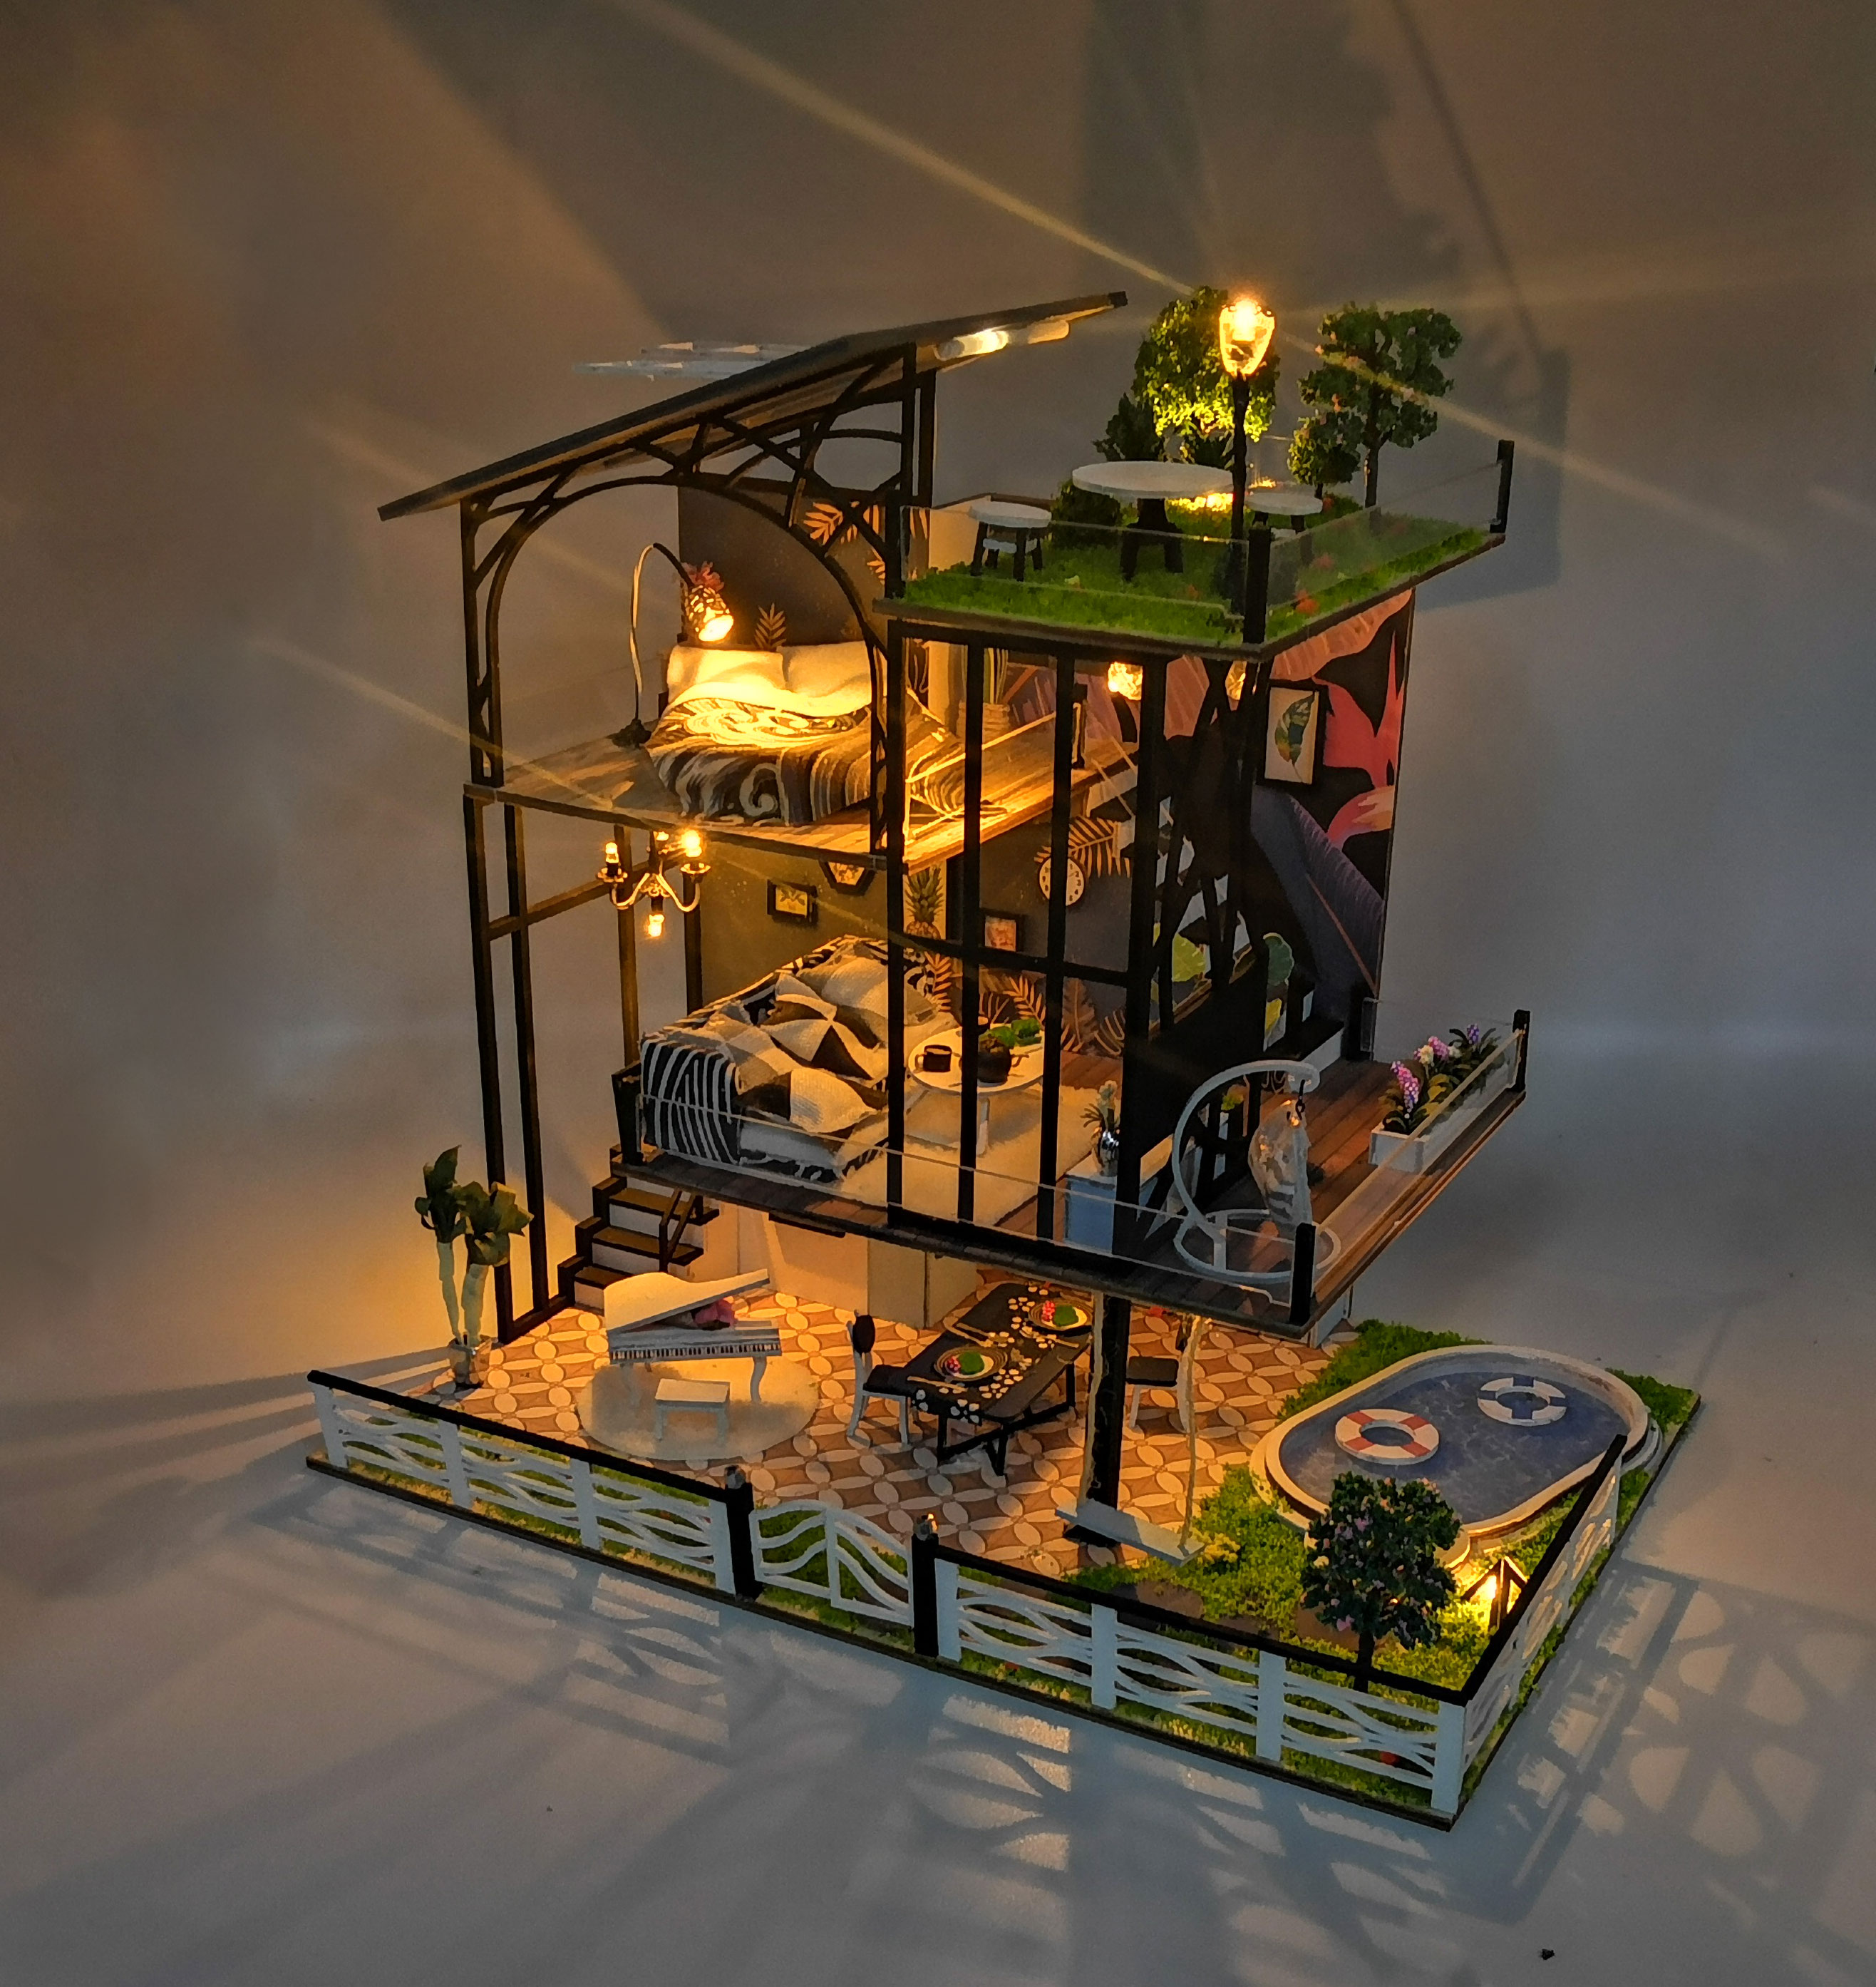 DIY Doll House Simulation 3D Wooden Dollhouse Kids Puzzle Toy with Light 3002